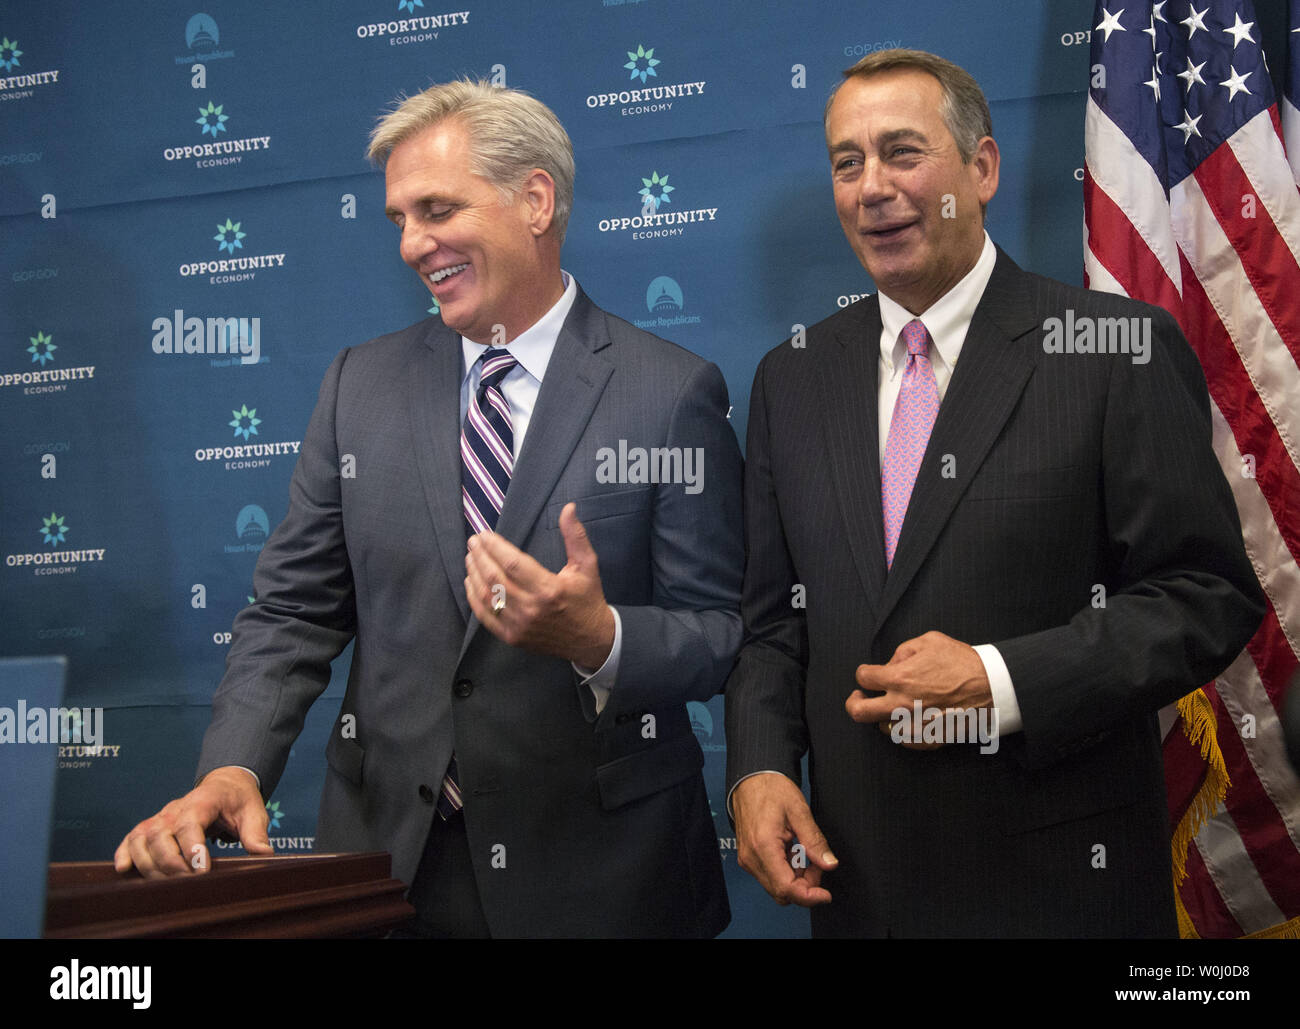 House Majority Leader Kevin McCarthy (R-SD) (L) and Speaker of the House John Boehner (R-OH) laugh together in response to a reporter's question on Boehner's recent announcement to step down, during a press conference on Capitol Hill in Washington, D.C. on September 29, 2015. Photo by Kevin Dietsch/UPI - Stock Image